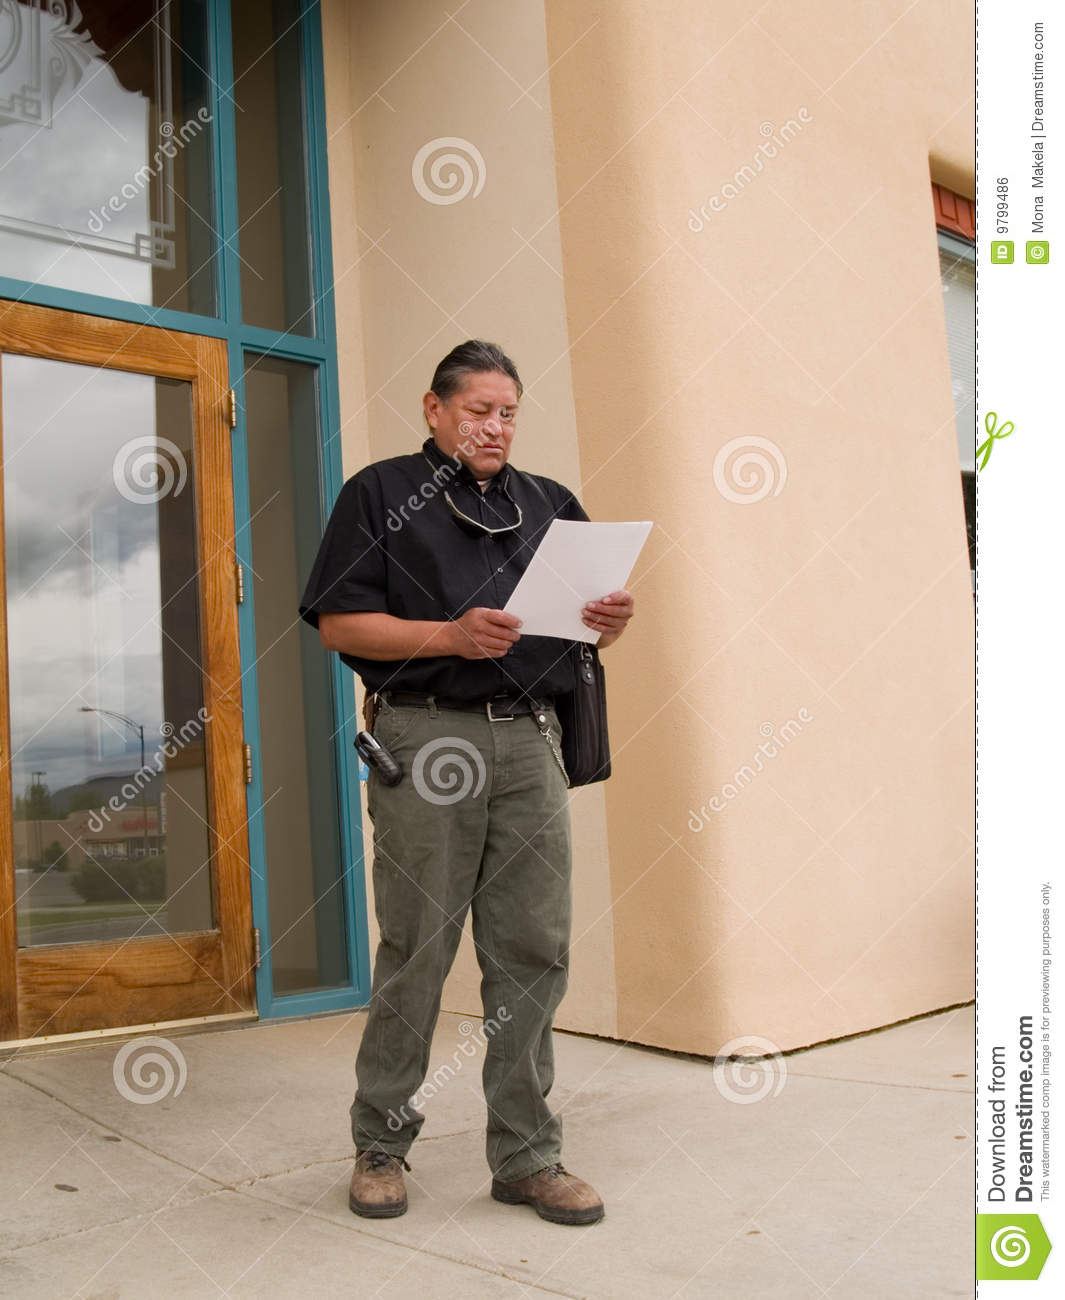 Native American man glancing at papers